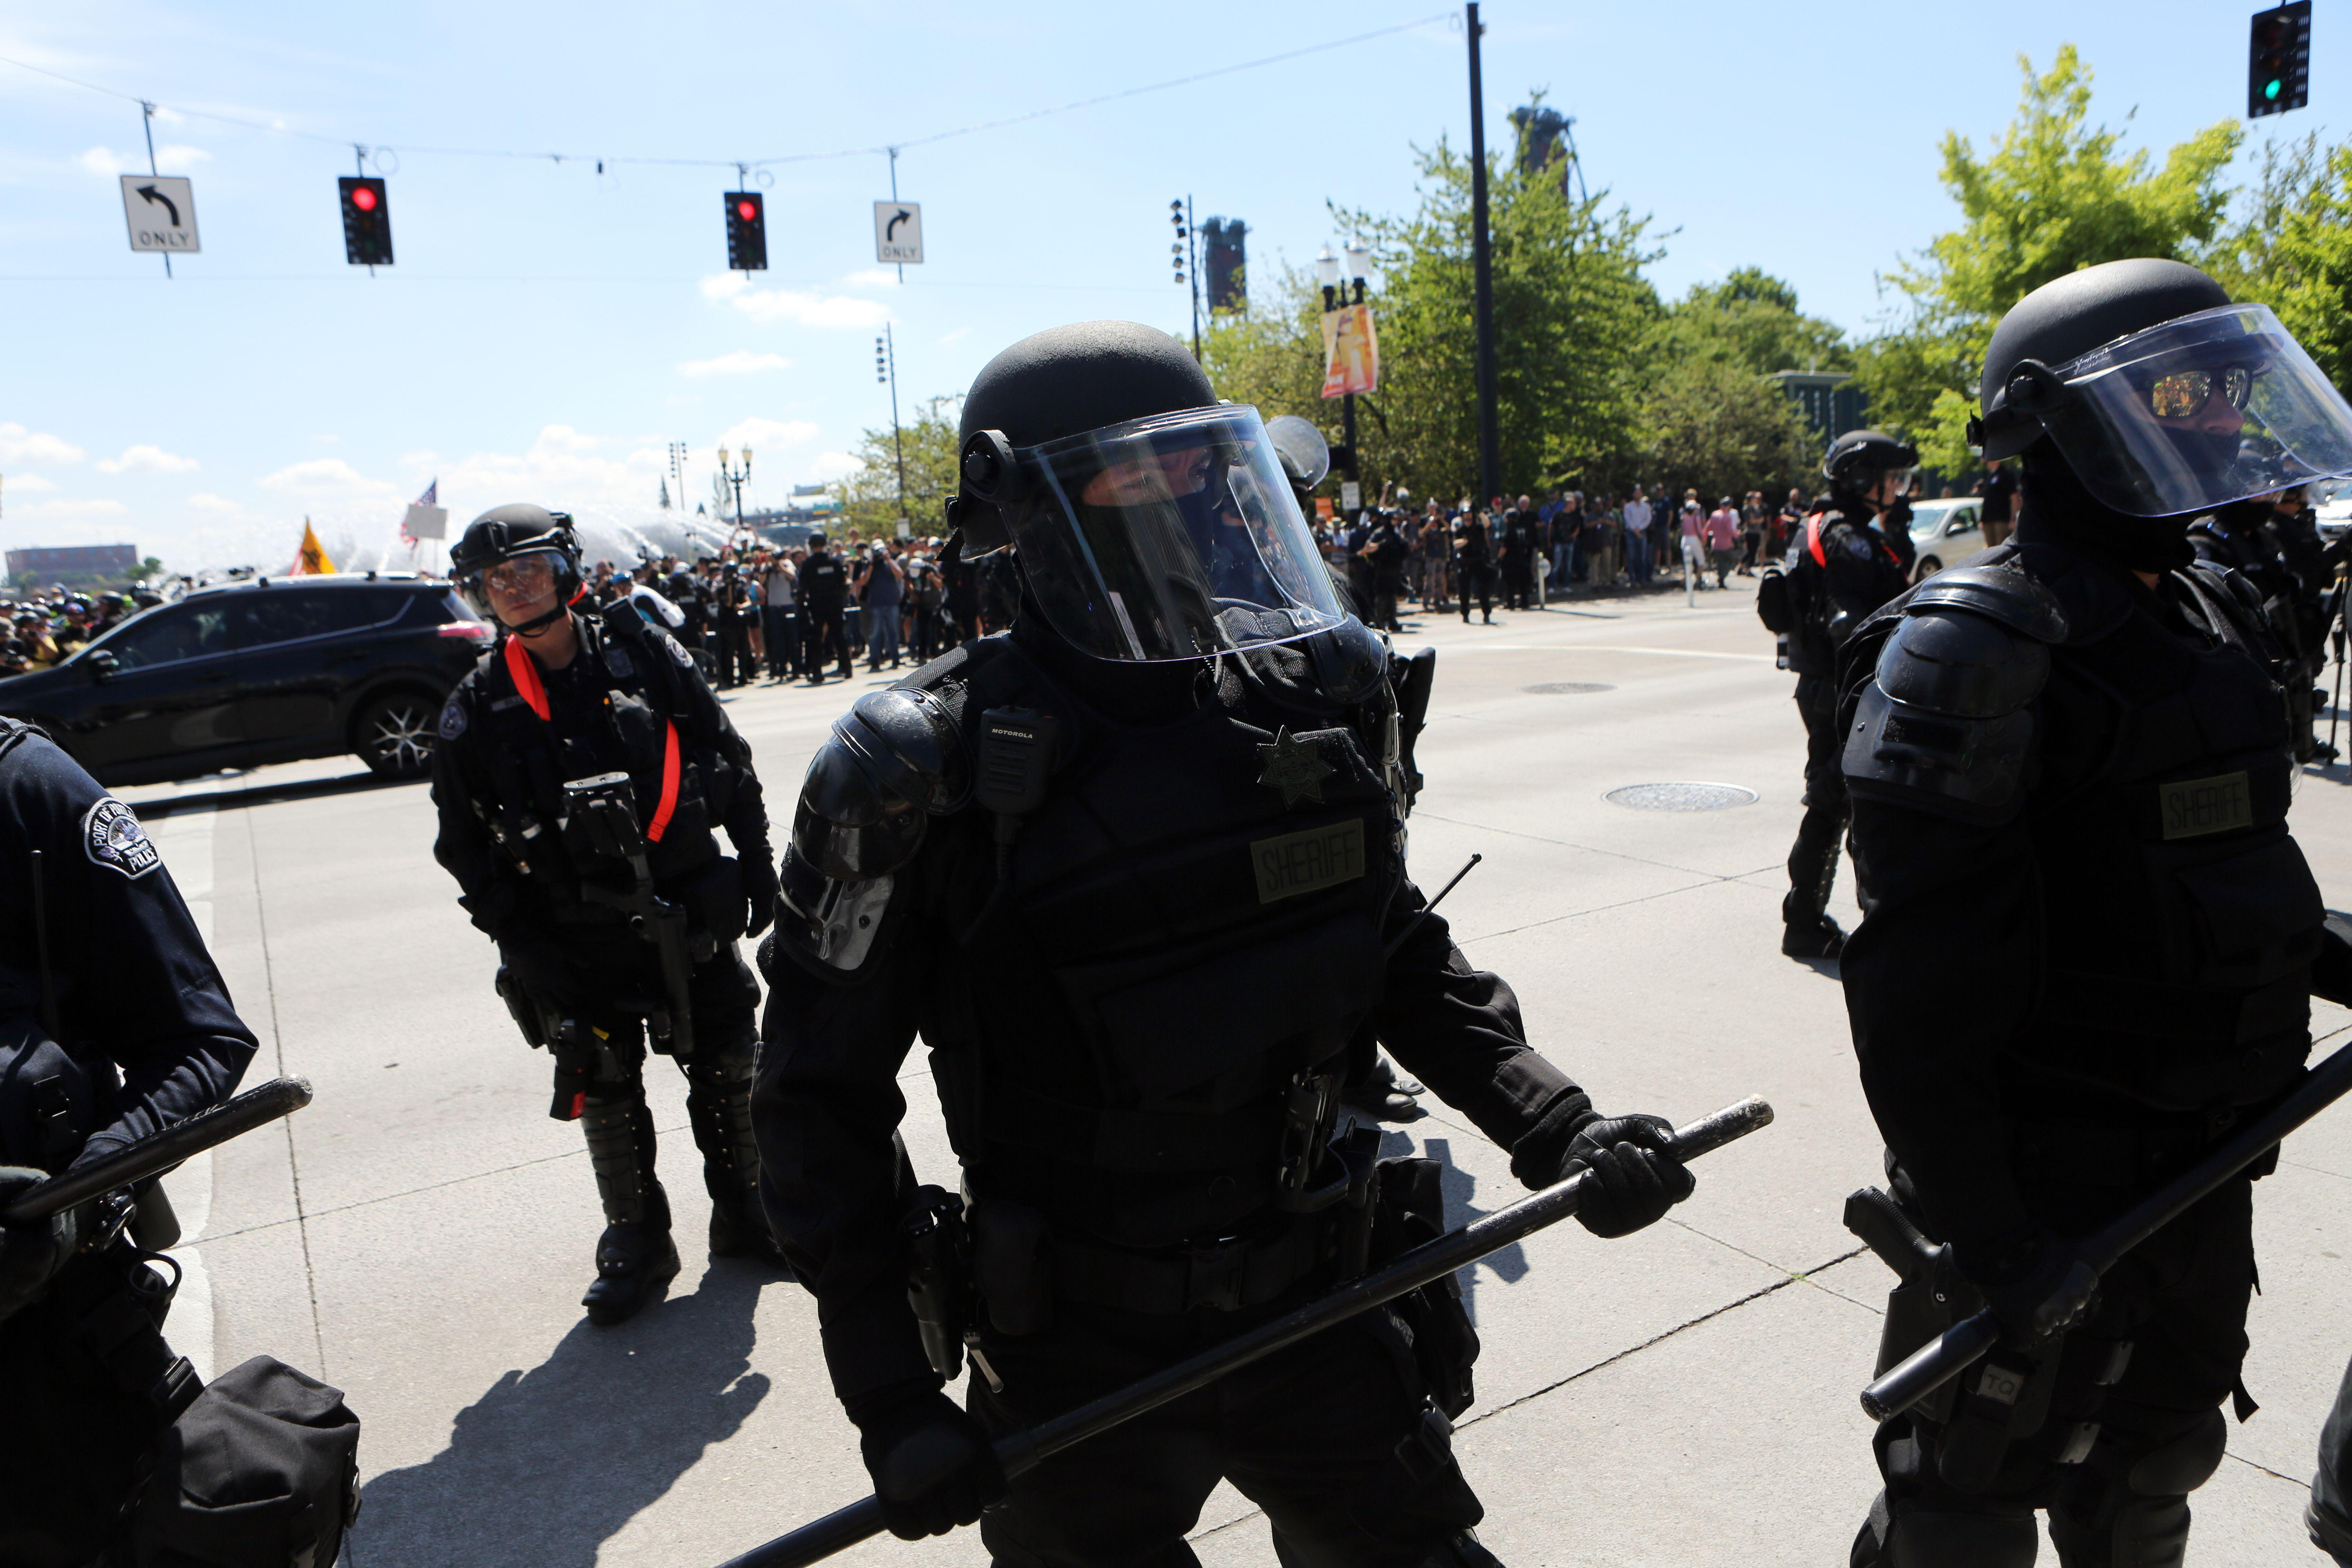 Police in riot gear stand at an intersection.  On the other side of the intersection, crowds of protesters can be seen.